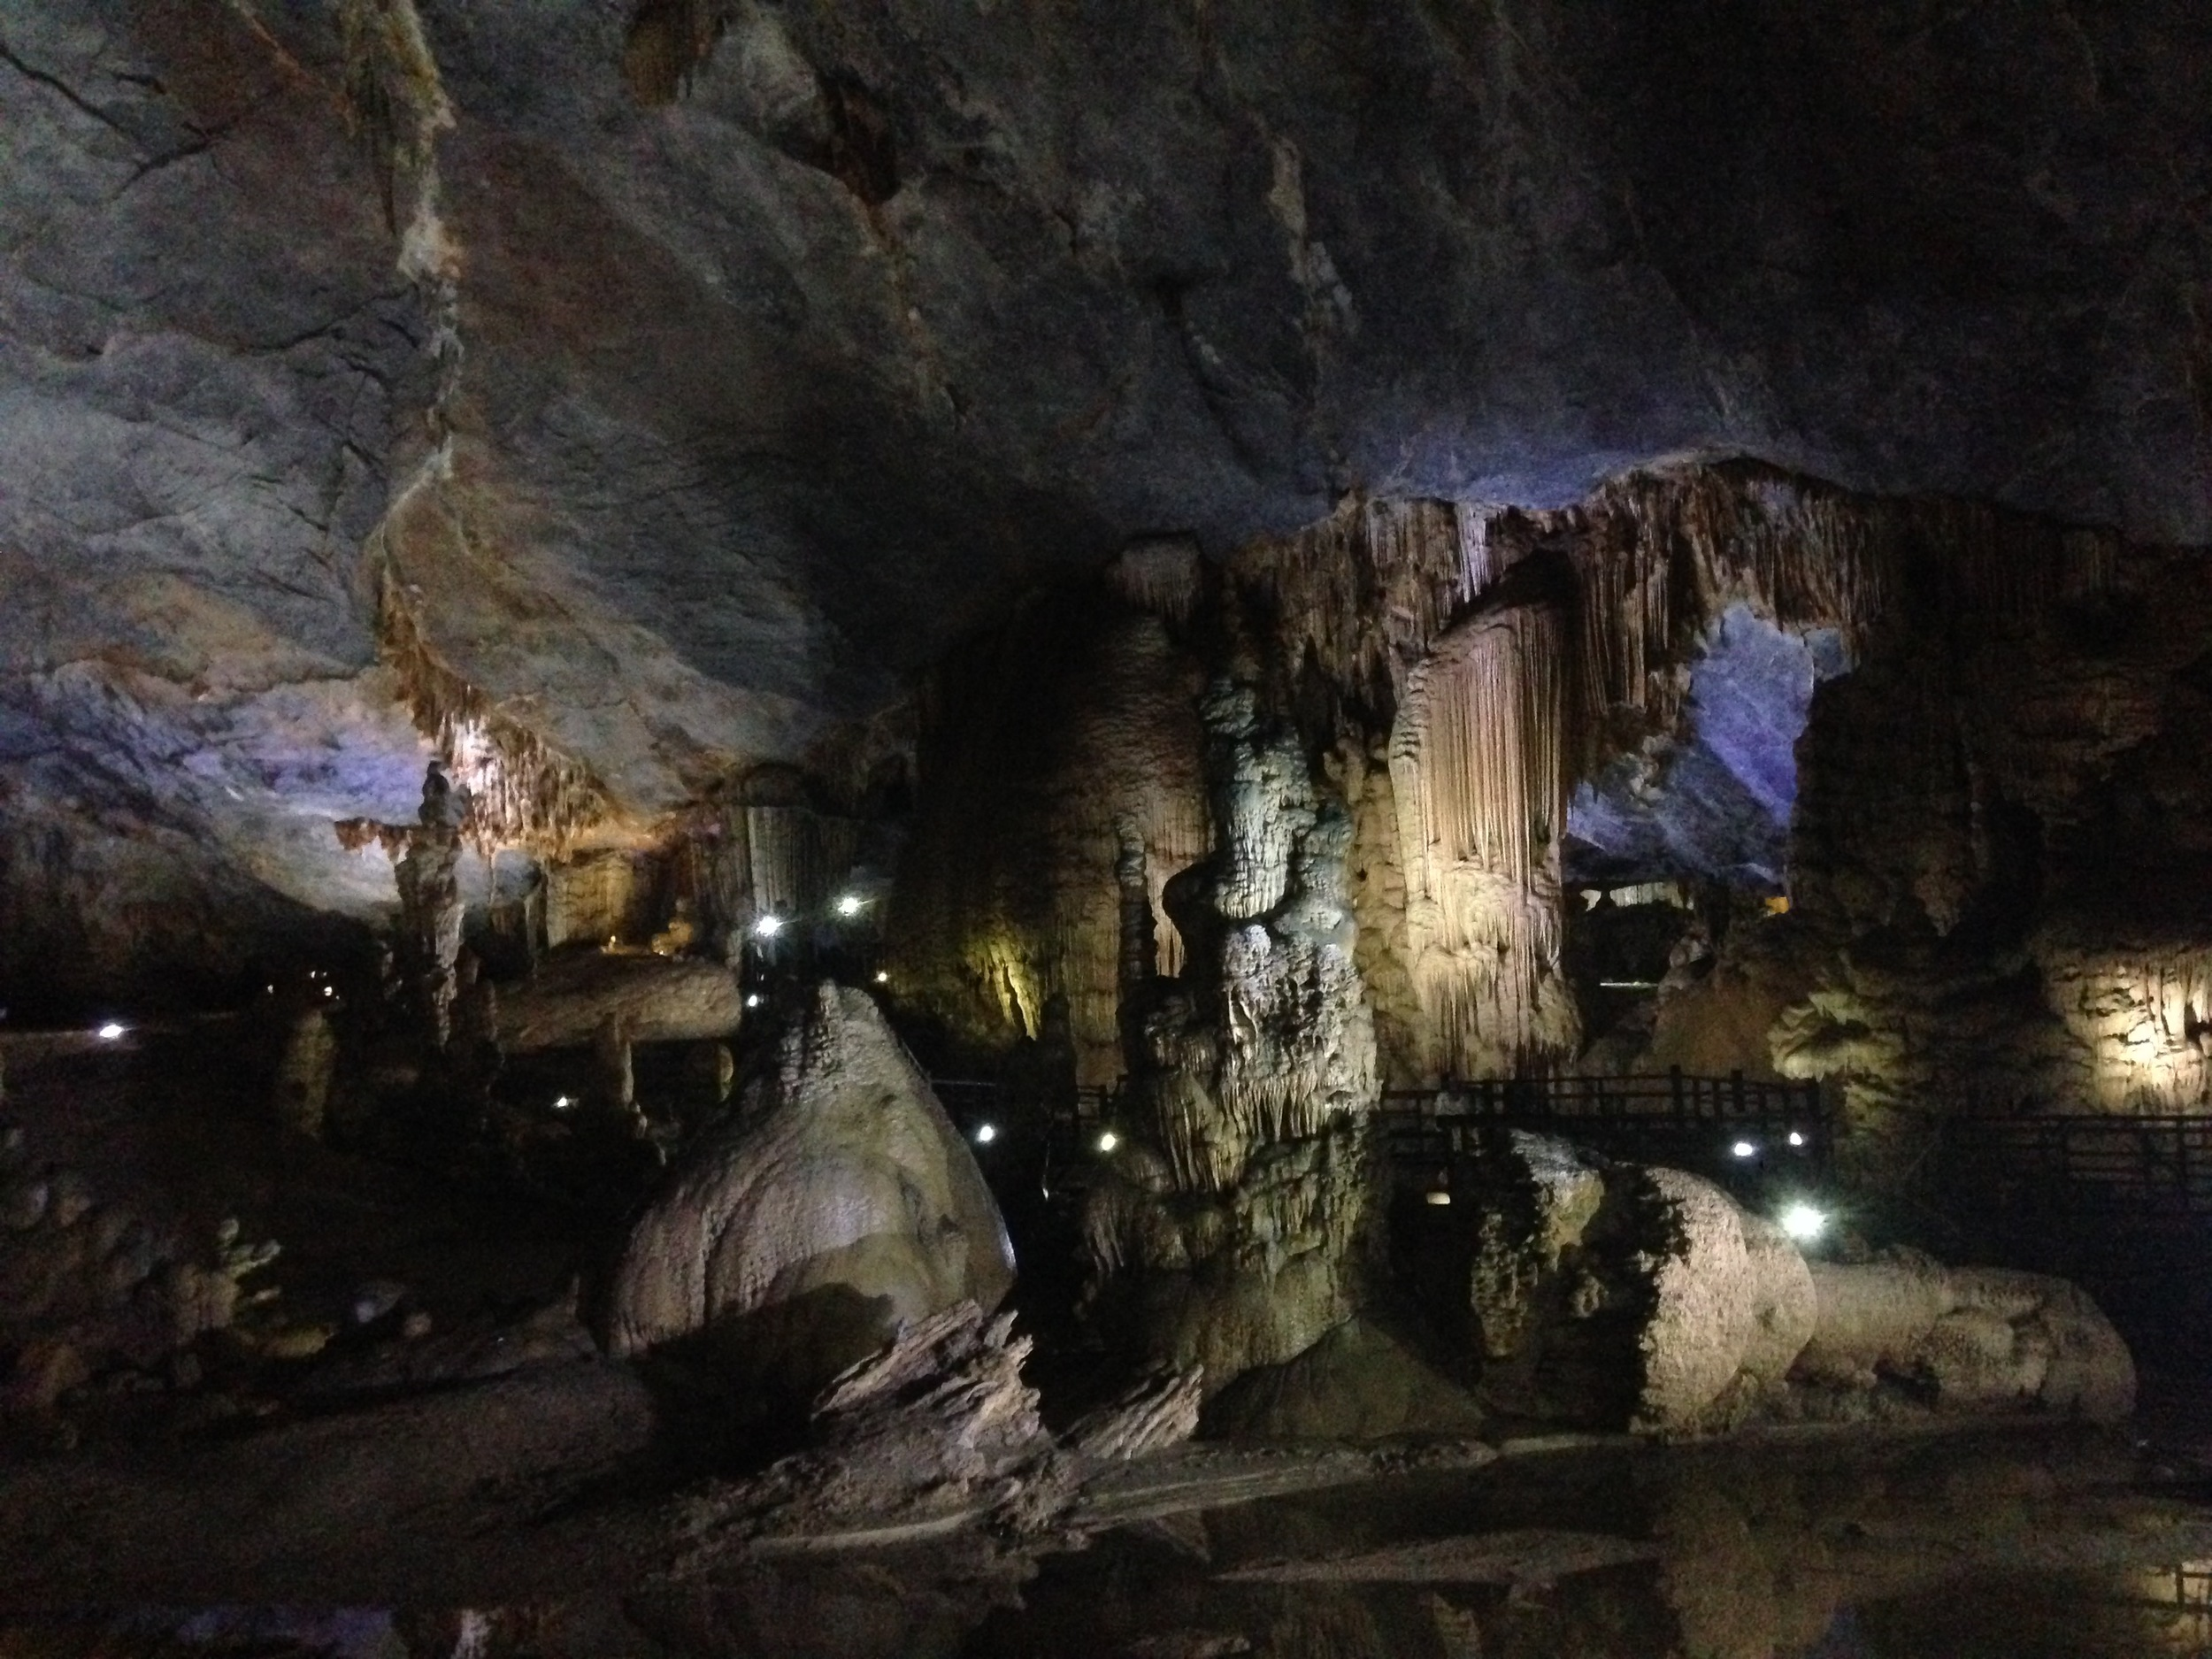 Inside Paradise Cave in Quan Bing